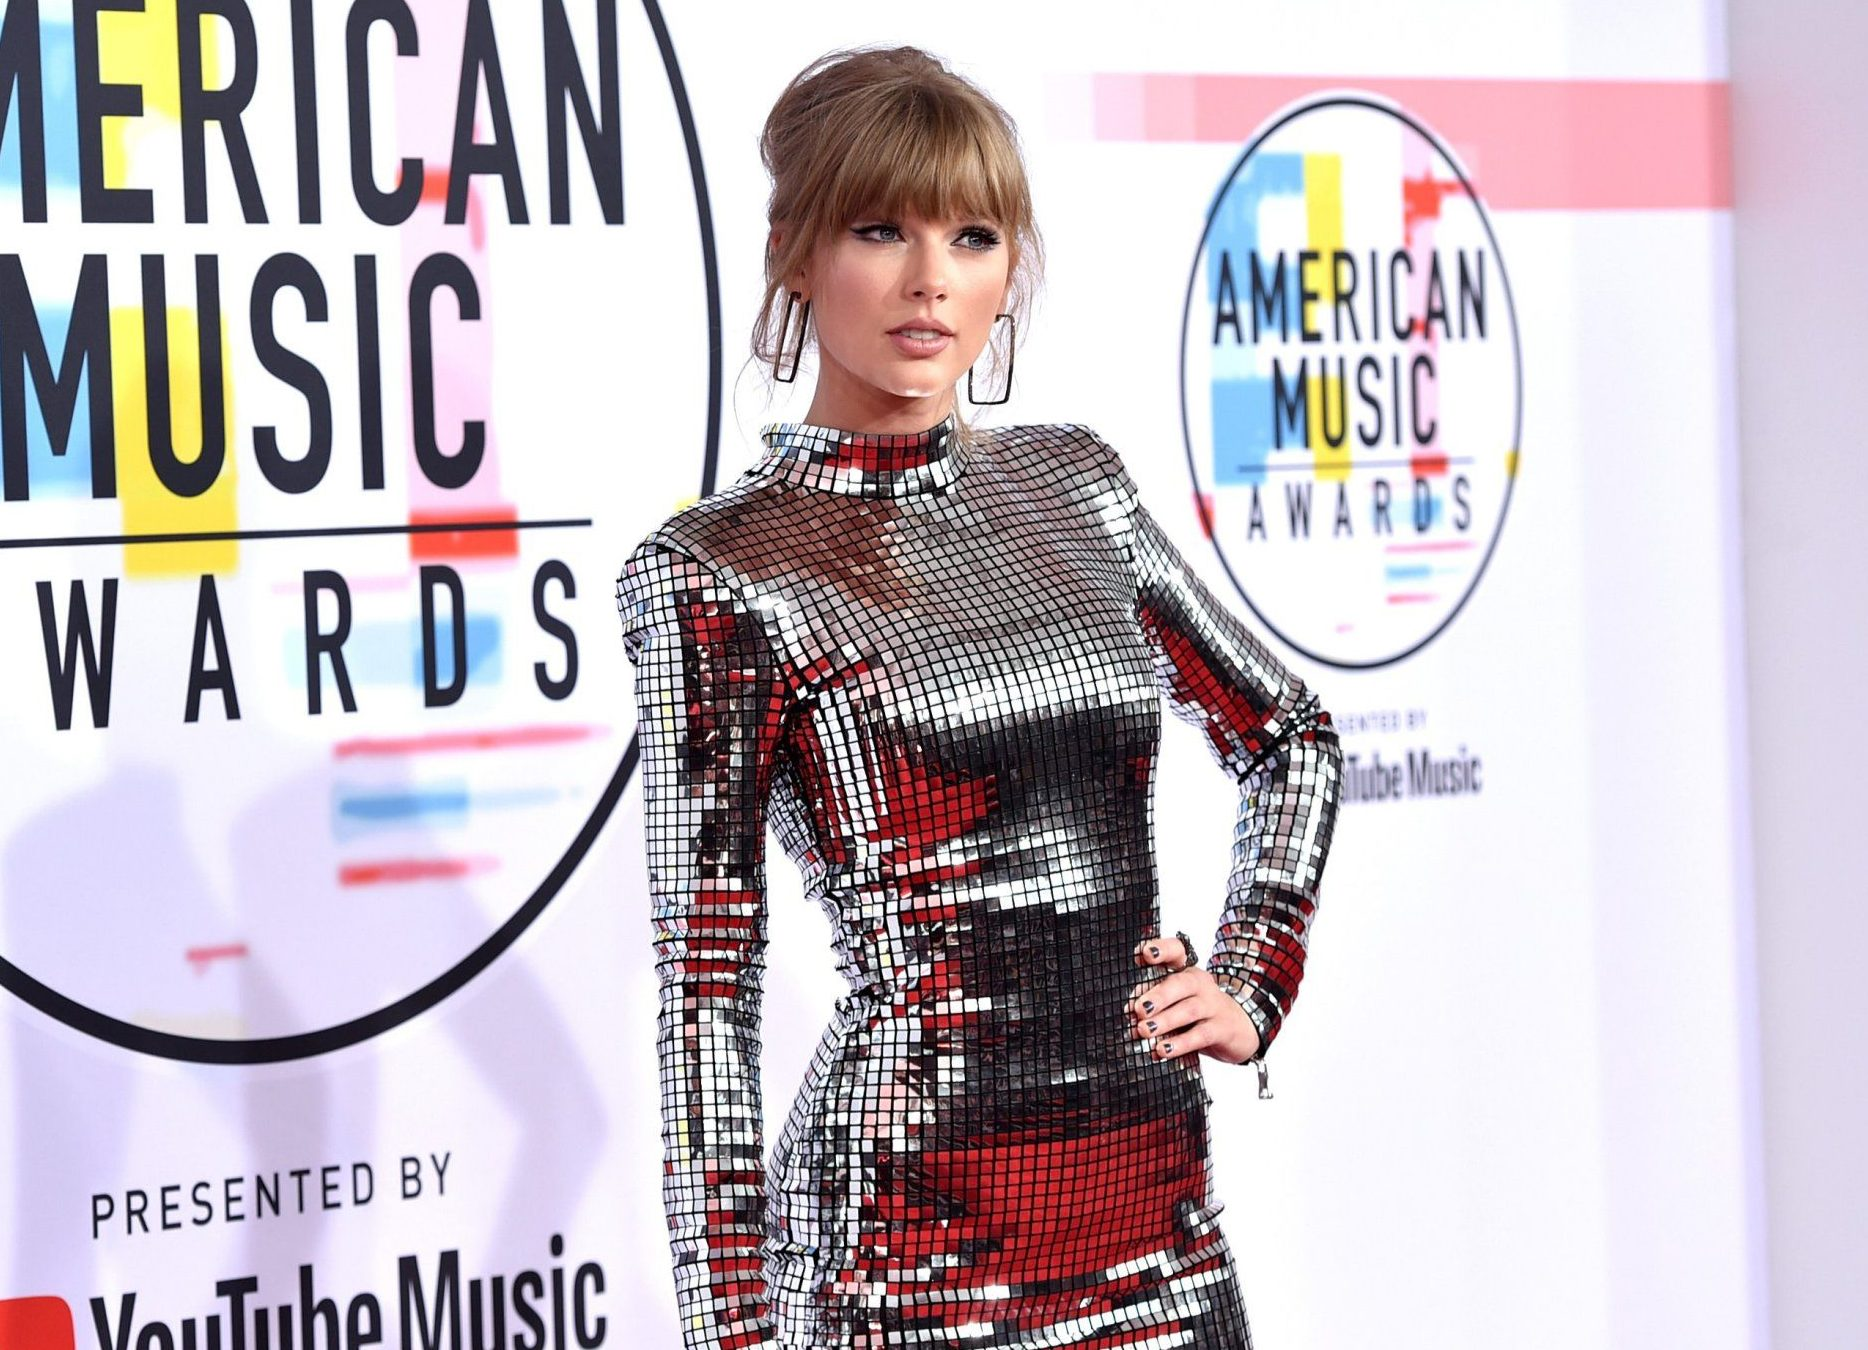 LOS ANGELES, CA - OCTOBER 09: Taylor Swift attends the 2018 American Music Awards at Microsoft Theater on October 9, 2018 in Los Angeles, California. (Photo by John Shearer/Getty Images For dcp)